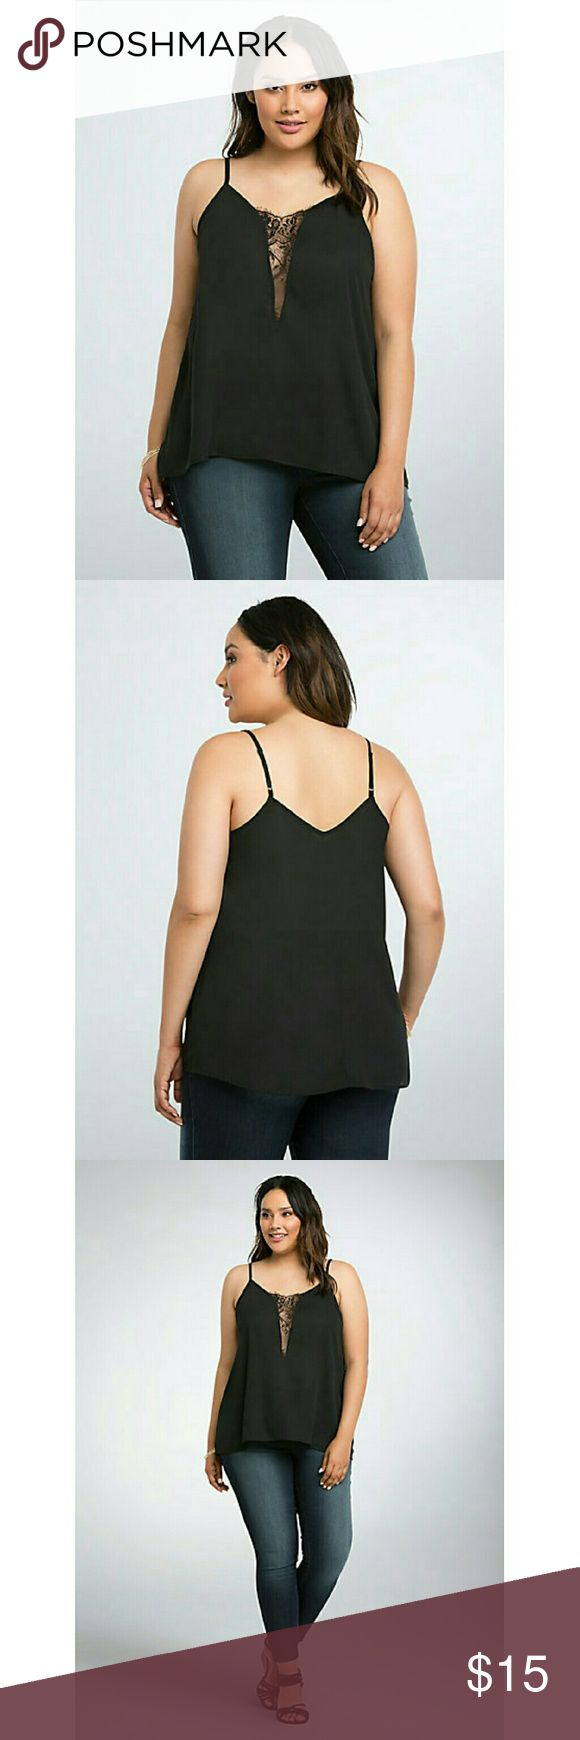 "Lace Inset Cami Top A little bit lingerie-inspired, this itty-bitty black georgette cami top is redefining the lace genre. With sheer lace insets under the arm and down the deep v-neck, this very sexy cami guarantees that whole ""drop jaws, turn heads"" effect.     Model is 5'10, size 1      Size 1 measures 25 3/8"" from shoulder     Polyester     Wash cold, dry low     Made in USA plus size top torrid Tops Camisoles"